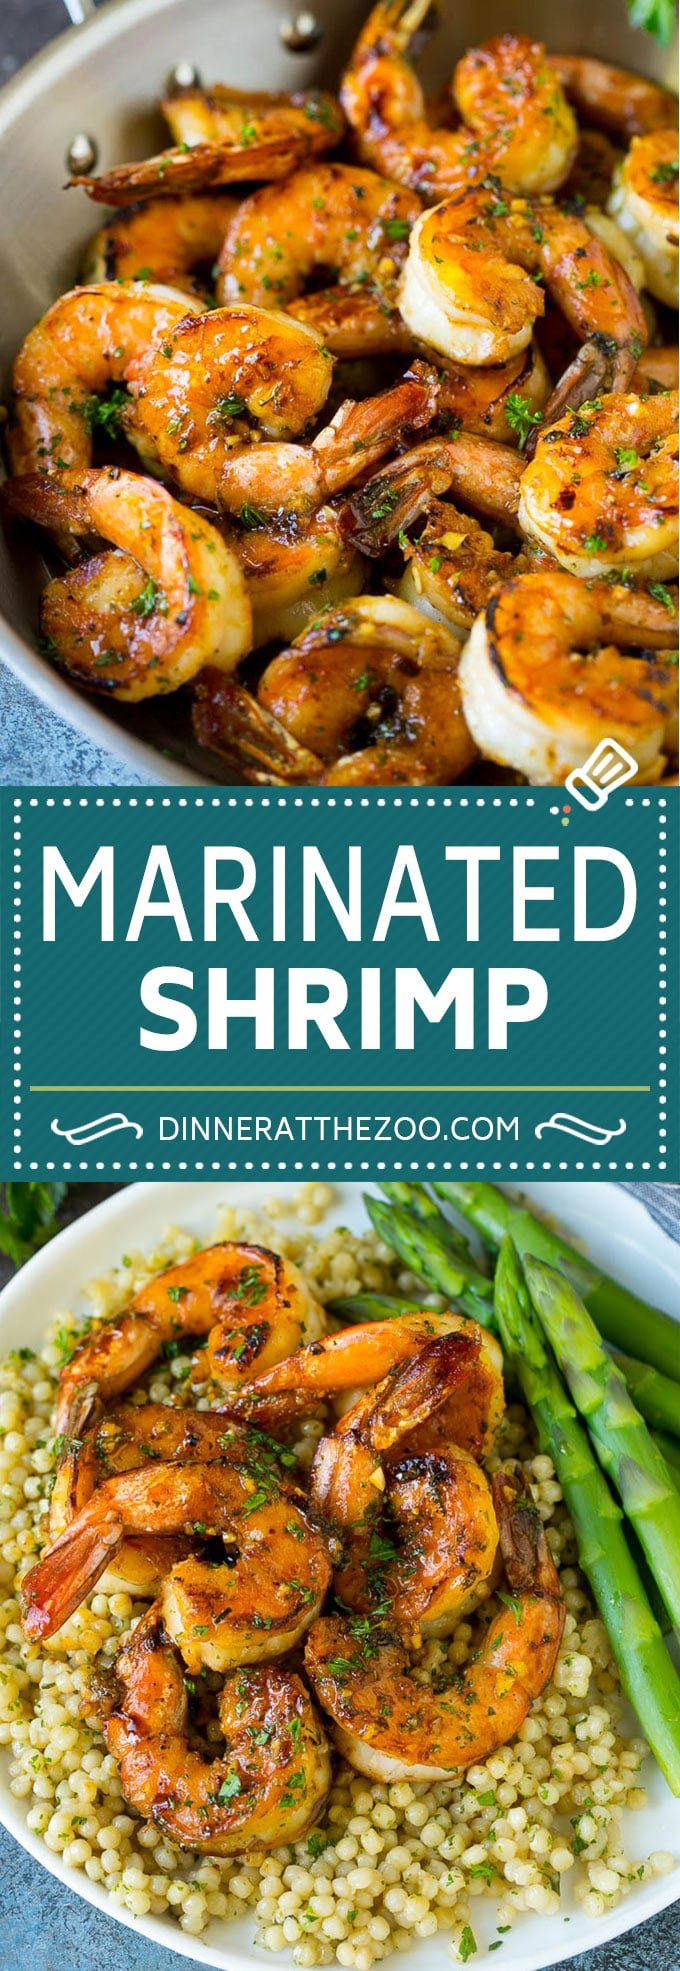 Marinated Shrimp Recipe | Shrimp Marinade | Grilled Shrimp | Sauteed Shrimp #shrimp #marinade #dinner #dinneratthezoo #grilling